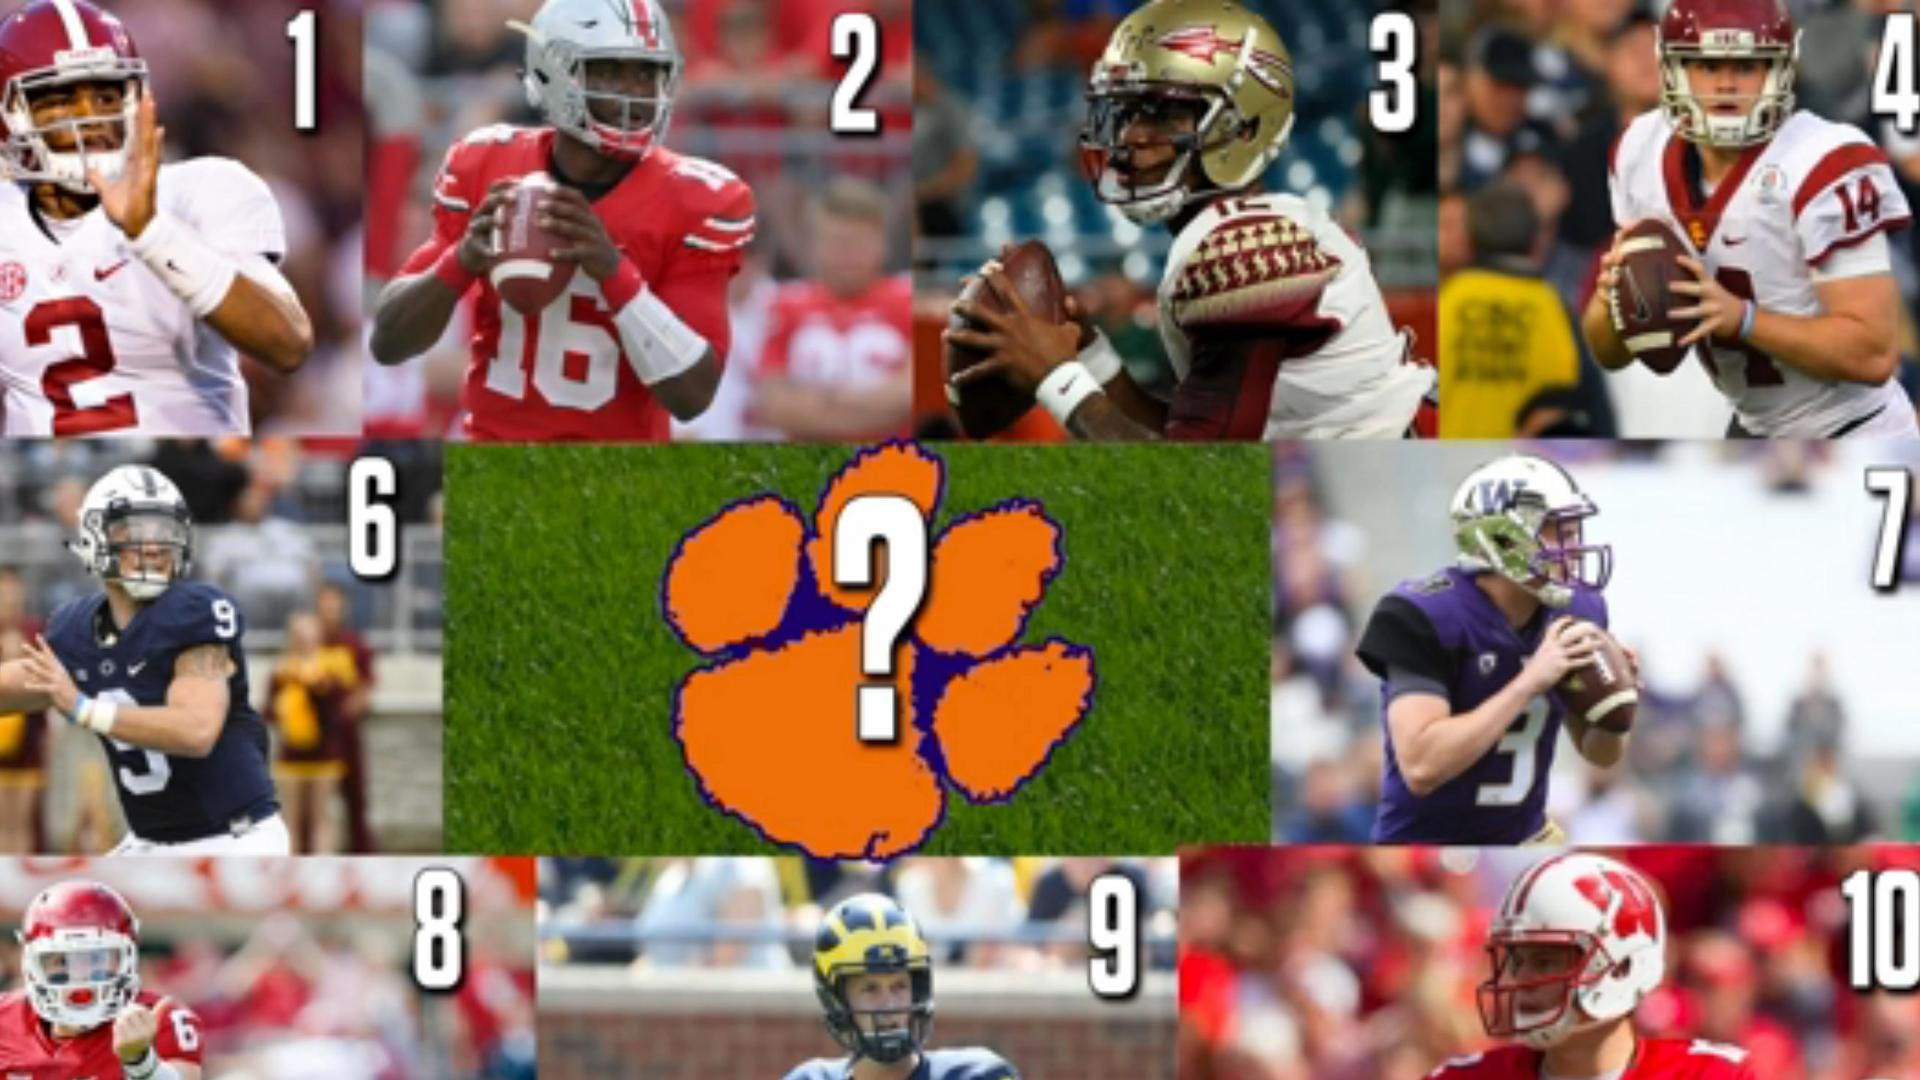 Who will be Clemson's new starting quarterback?